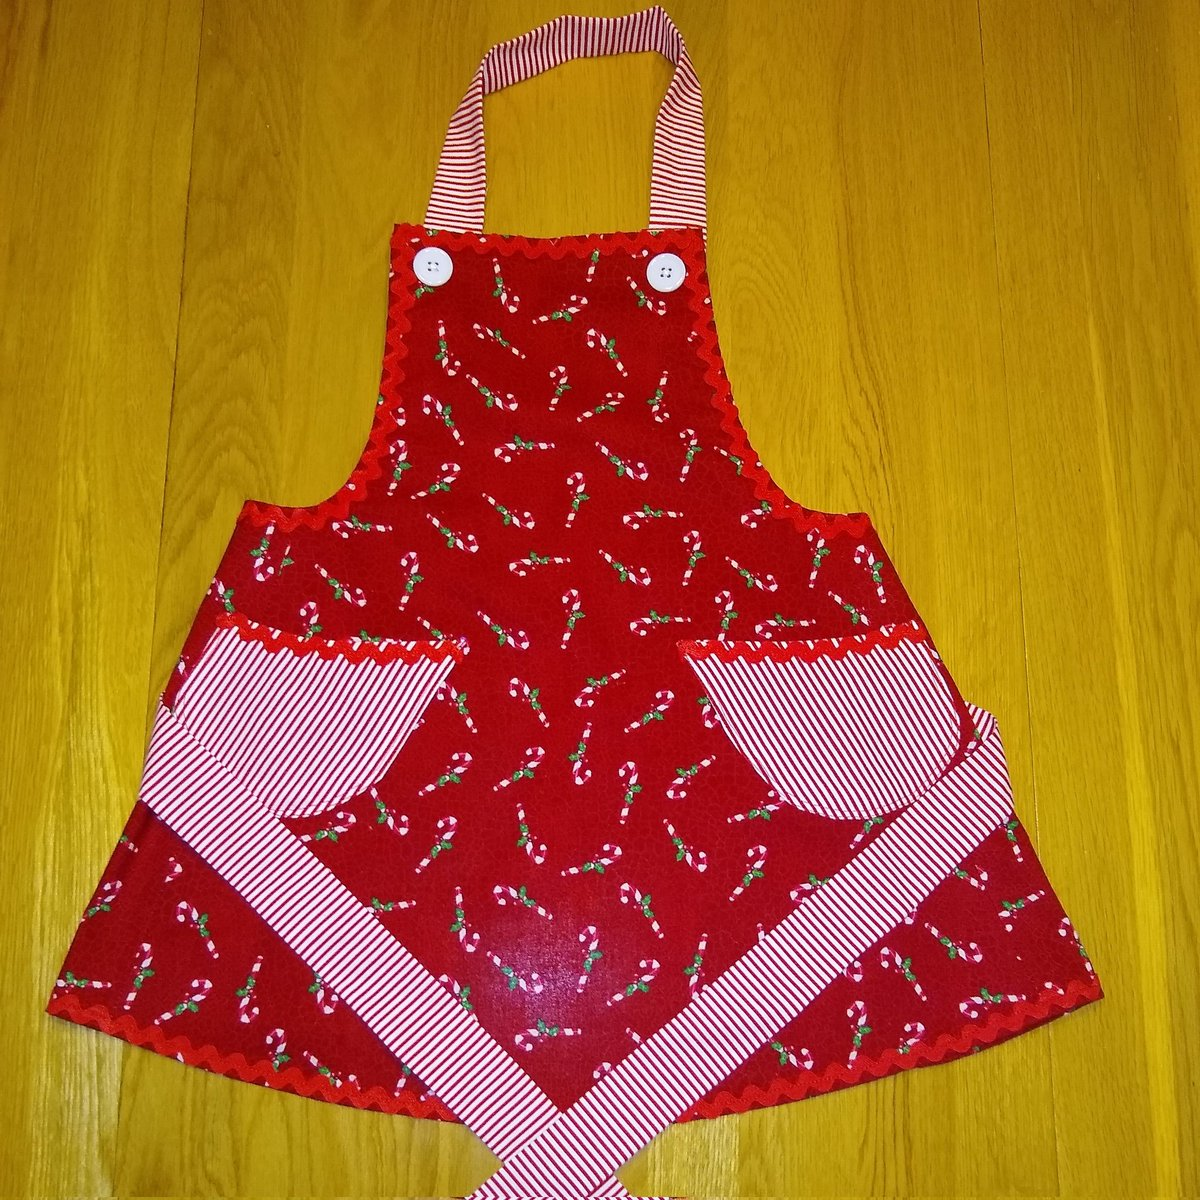 Excited to share the latest addition to my #etsy shop: Candycane Apron #christmas #apron #chef #kitchenapron #cooking #baking #kidsapron #candycanes